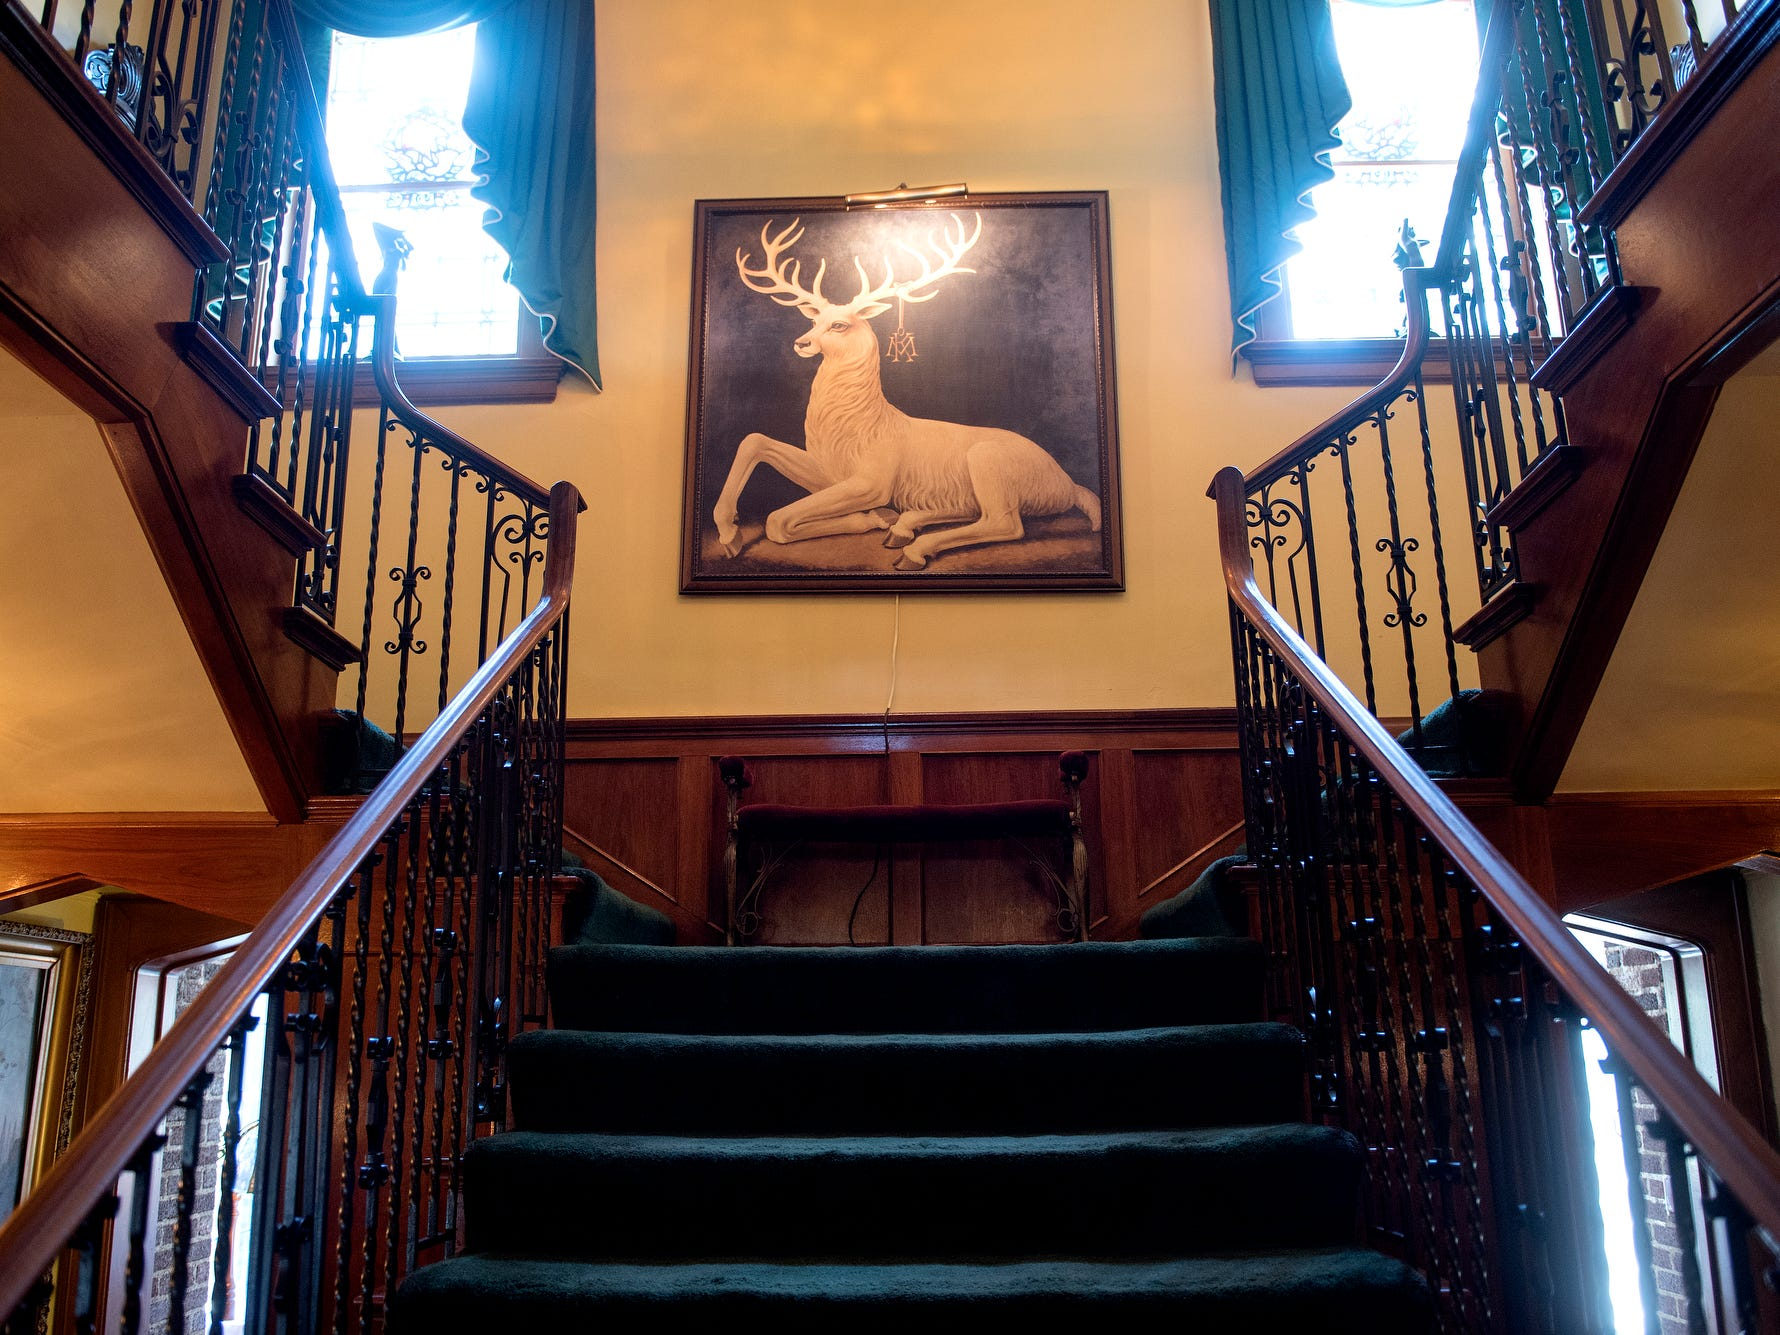 A large portrait of a buck deer hangs in the stairway at the English Inn on Tuesday, Aug. 28, 2018, in Eaton Rapids. The 17-room mansion was once the home of Oldsmobile president Irving Reuter and his wife, Janet.